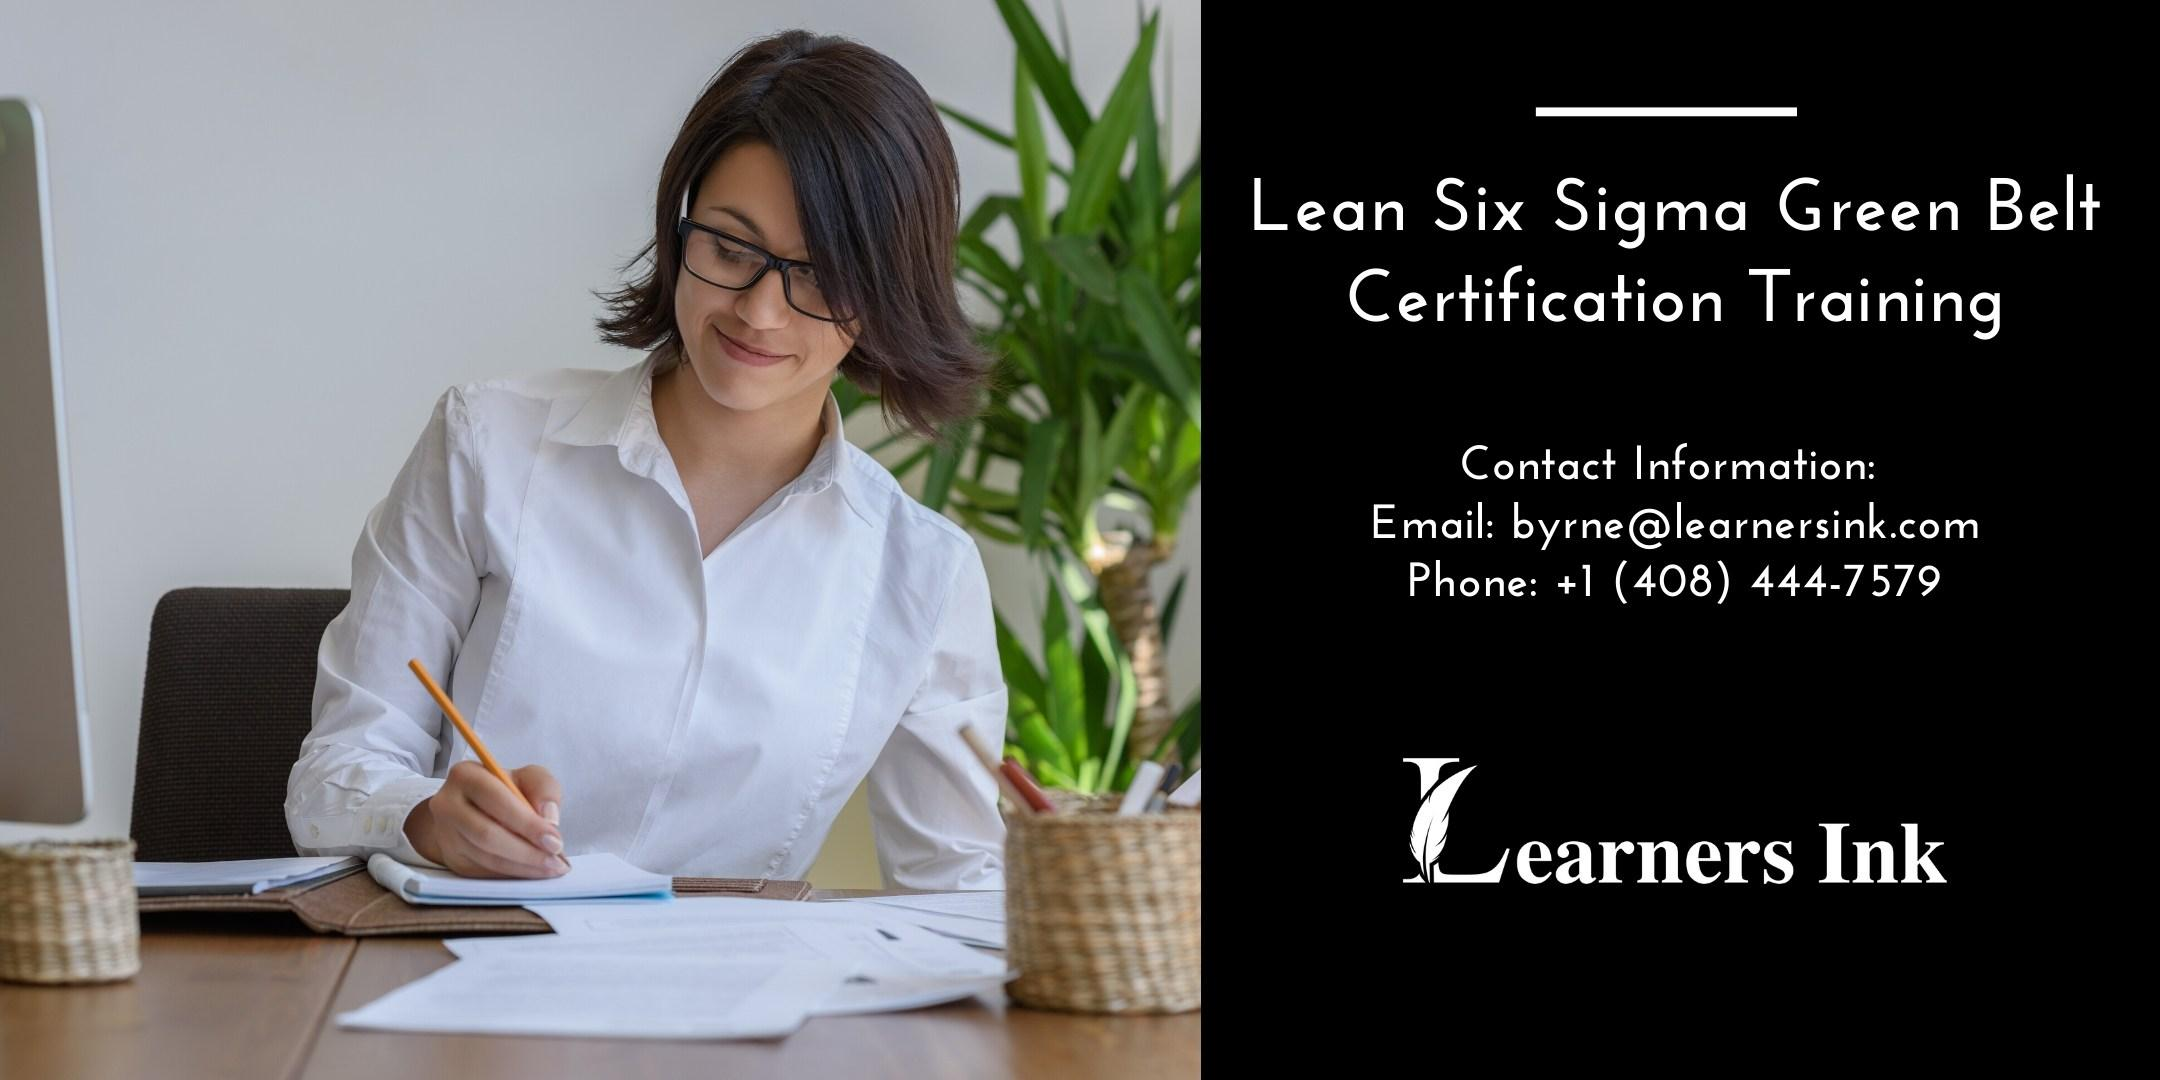 Lean Six Sigma Green Belt Certification Training Course (LSSGB) in Montreal